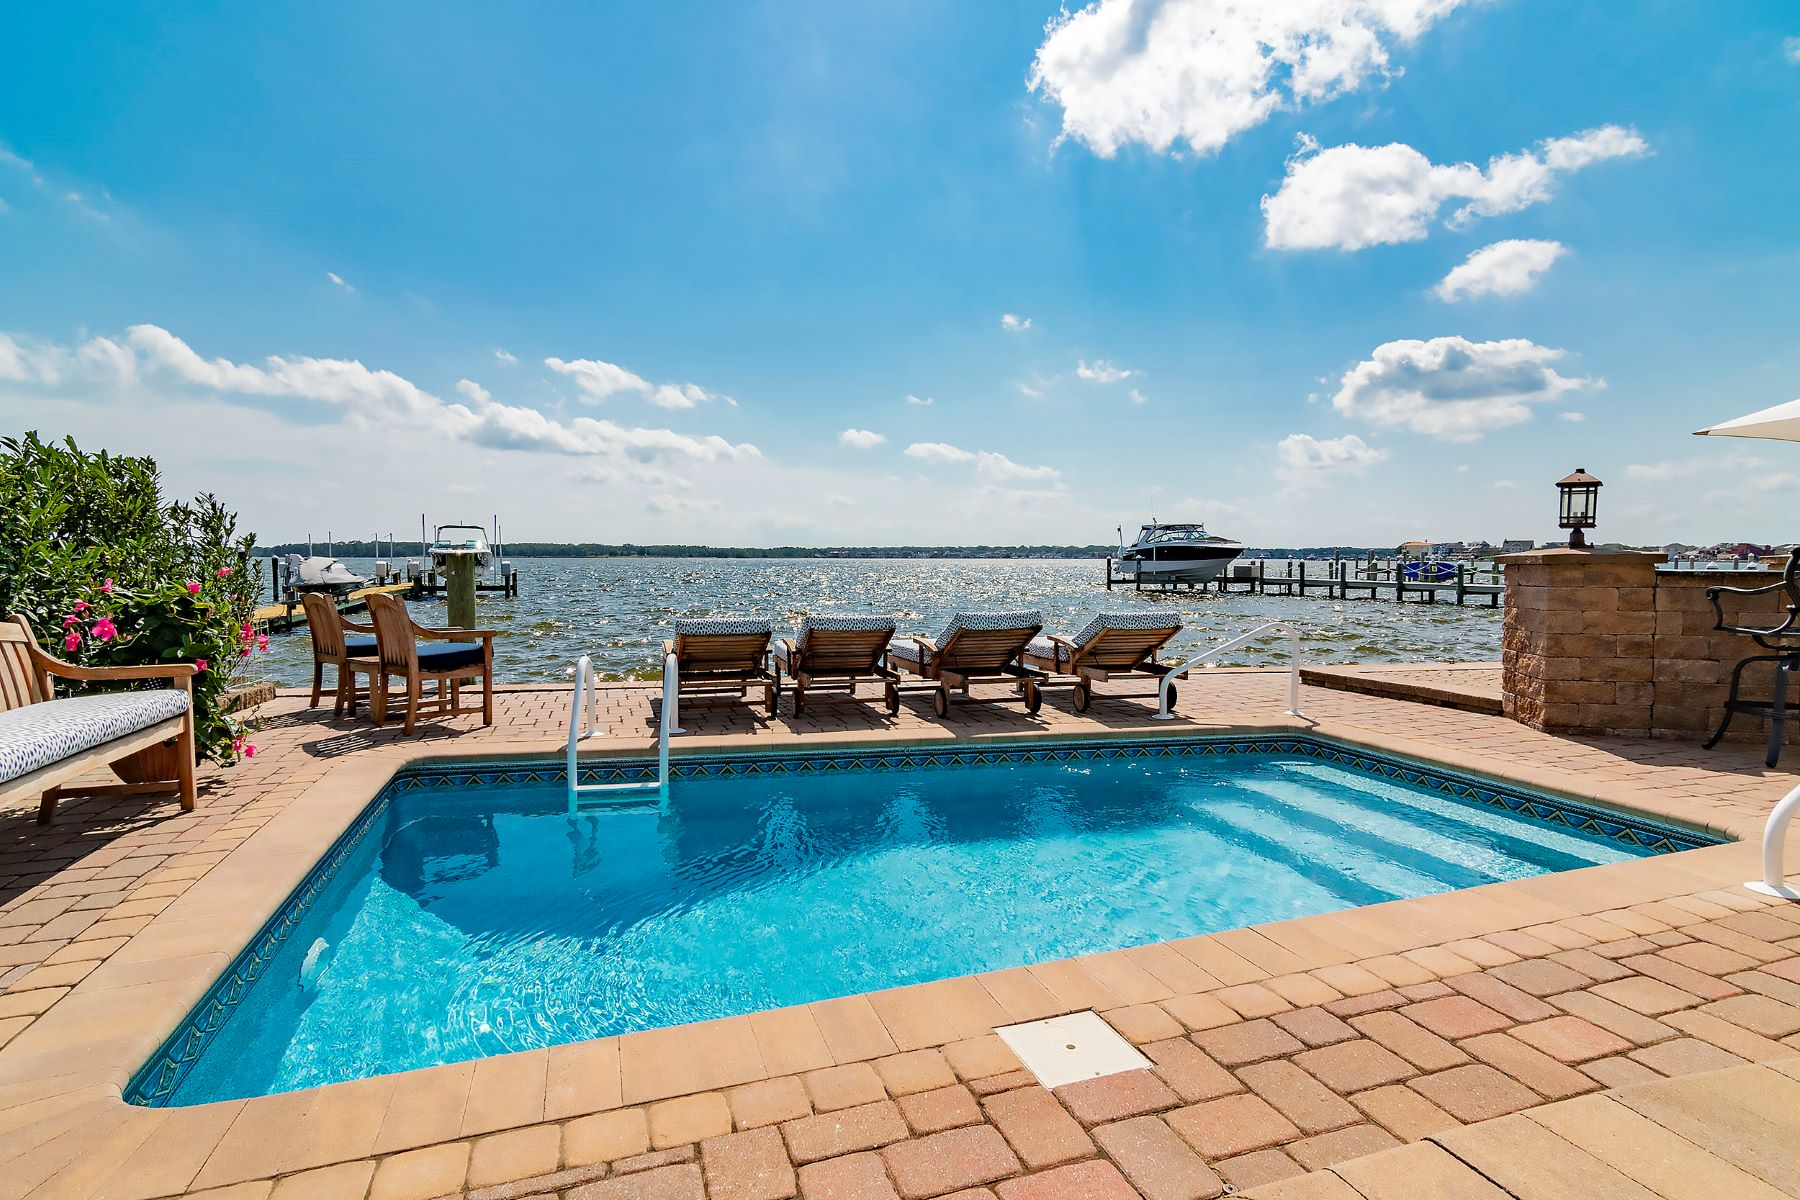 Single Family Homes for Sale at Spacious Bayfront Colonial With Spectacular Views Of Silver Bay 223 Bay Stream Drive Toms River, New Jersey 08753 United States